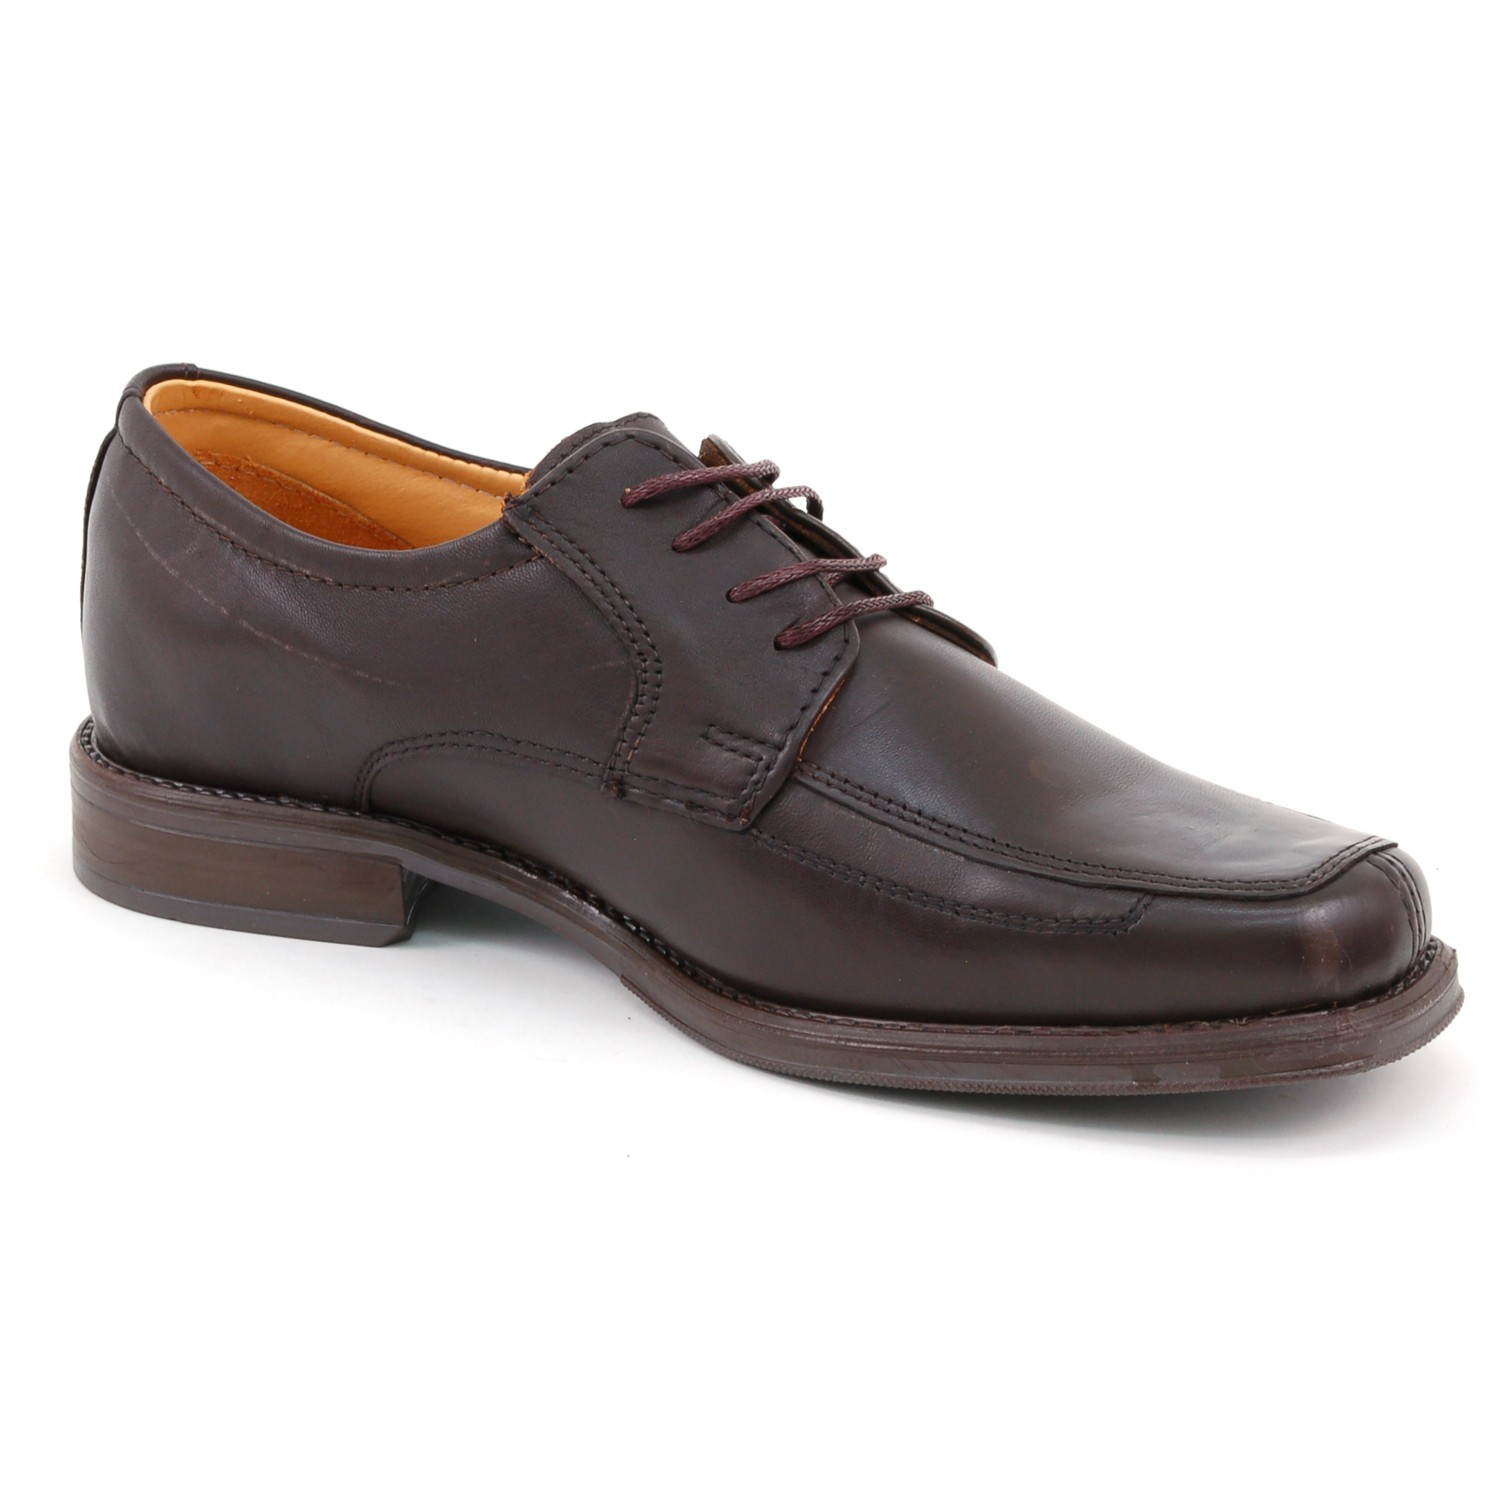 Mens-Lace-Up-Oxfords-Dress-Shoes-Genuine-Leather-Moc-Toe-Giorgio-Brutini-Padded thumbnail 17